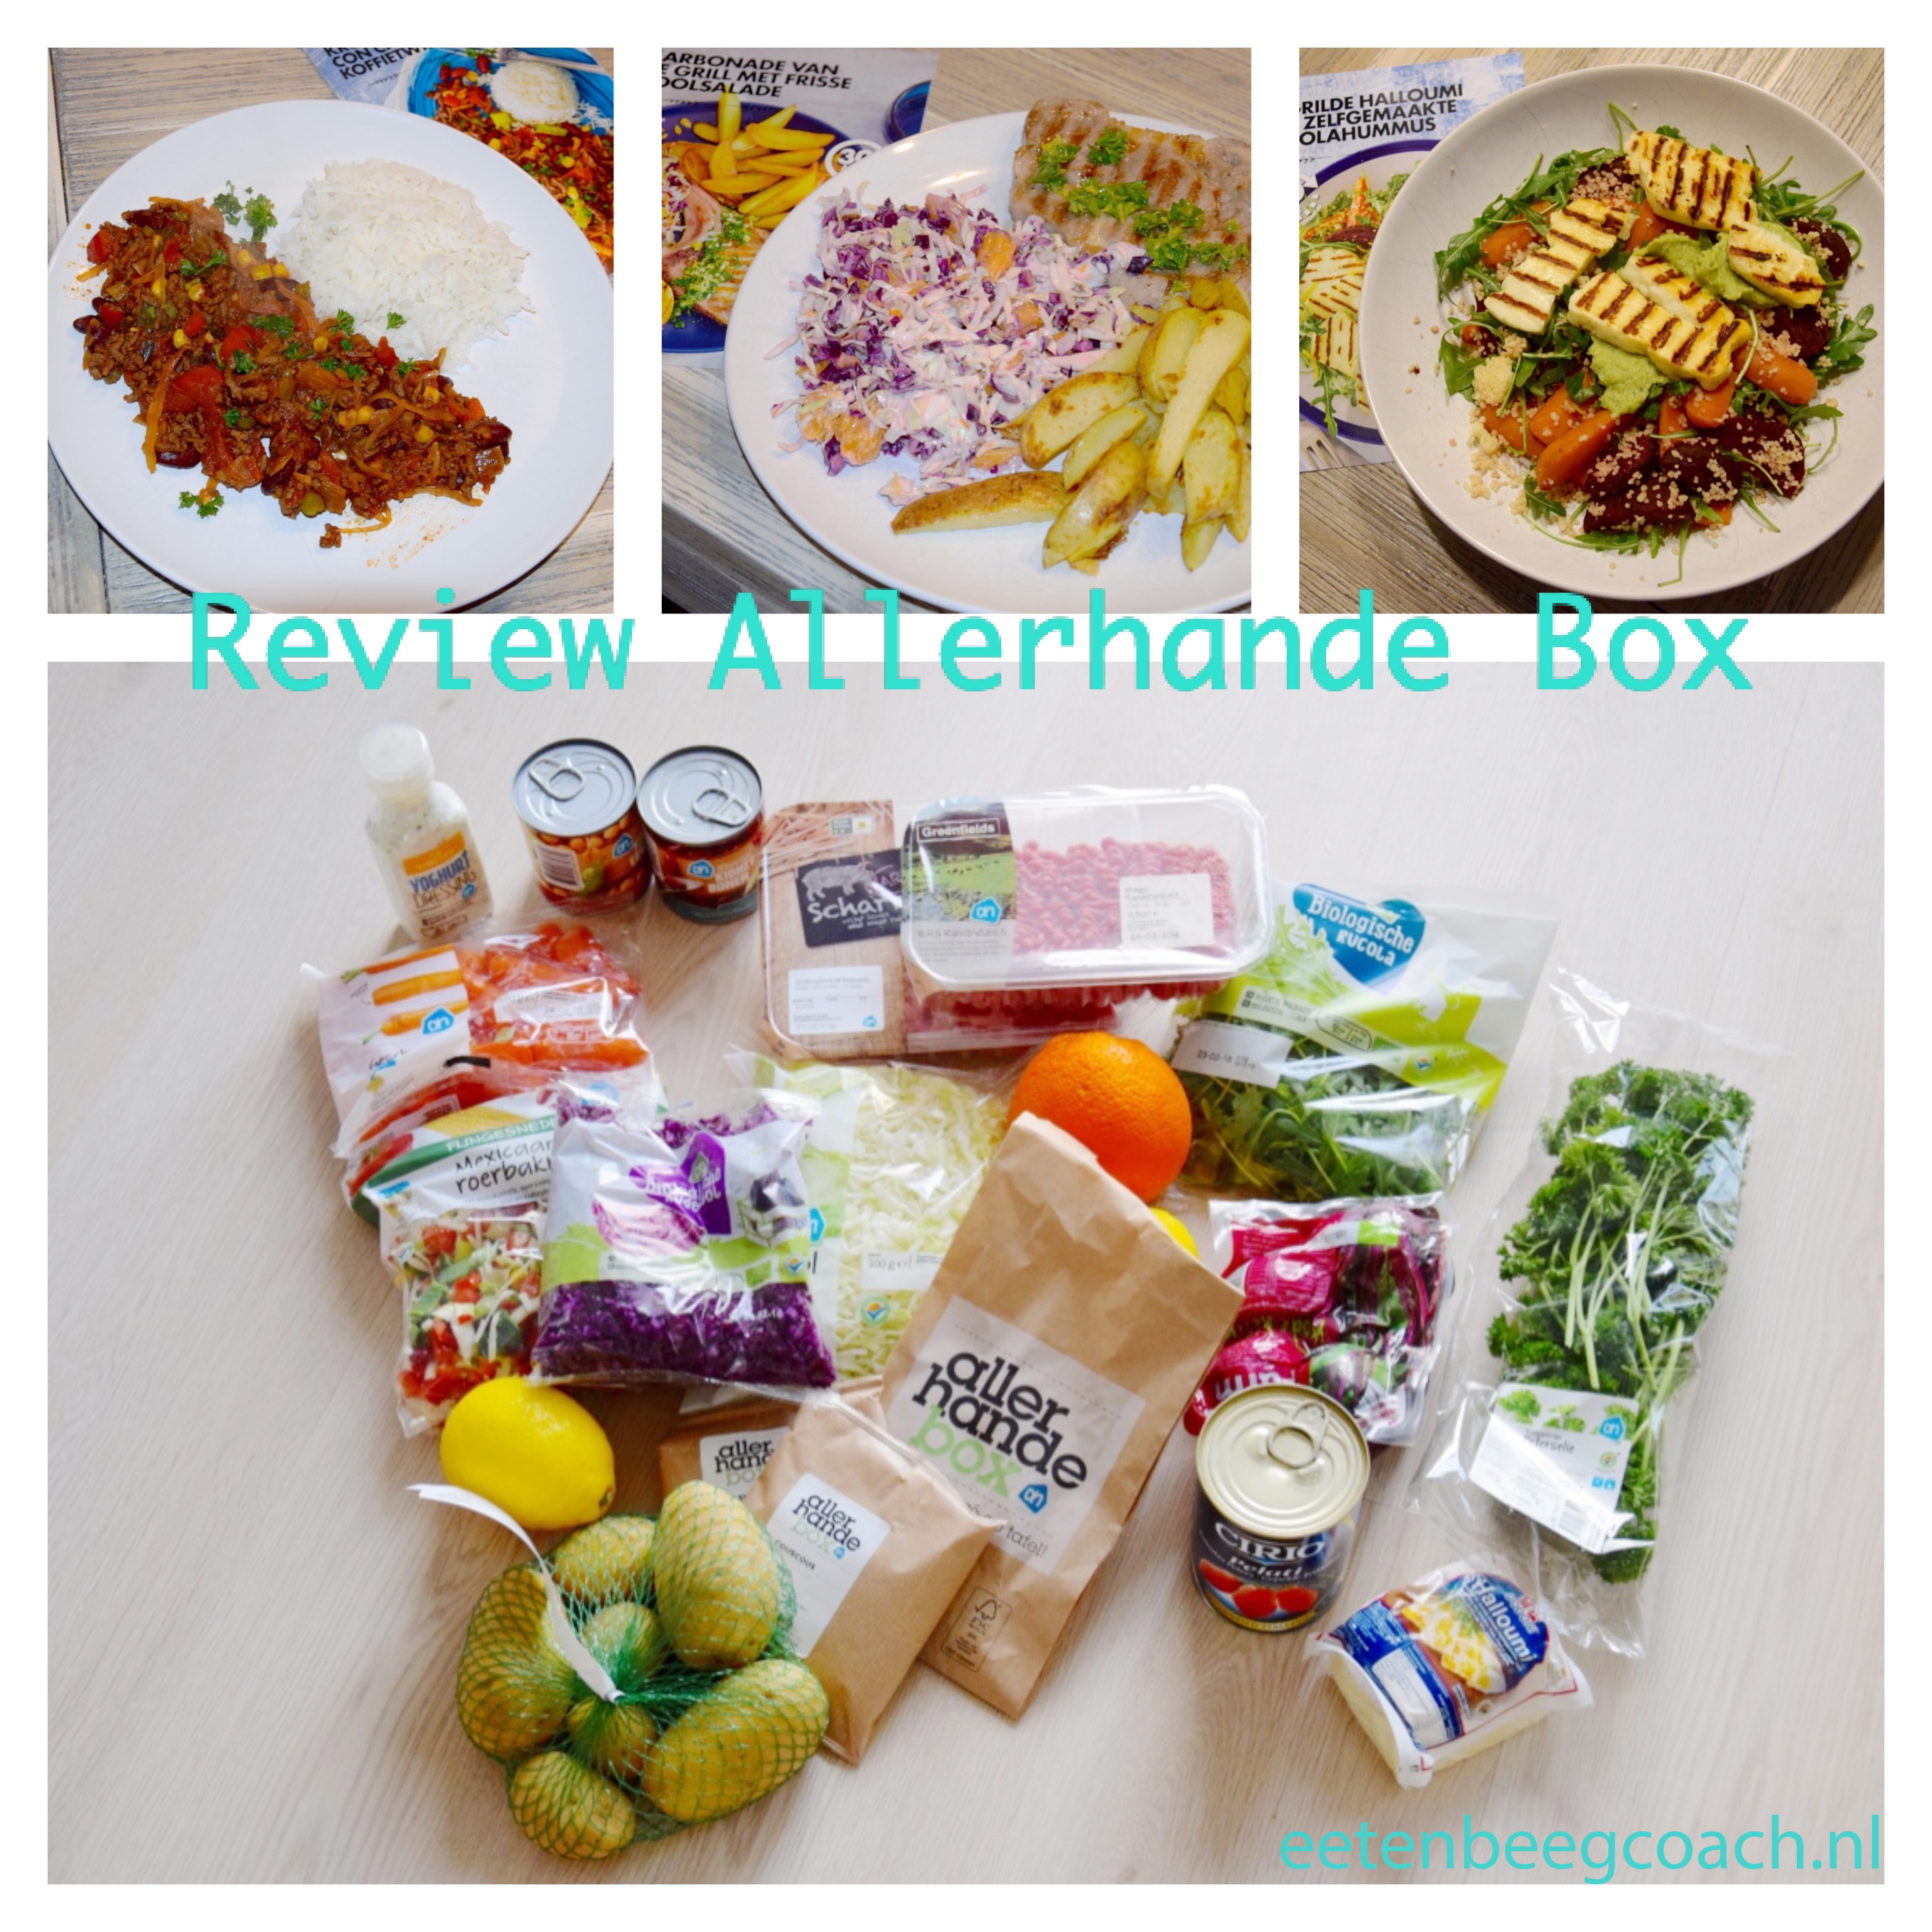 Review Allerhande Box